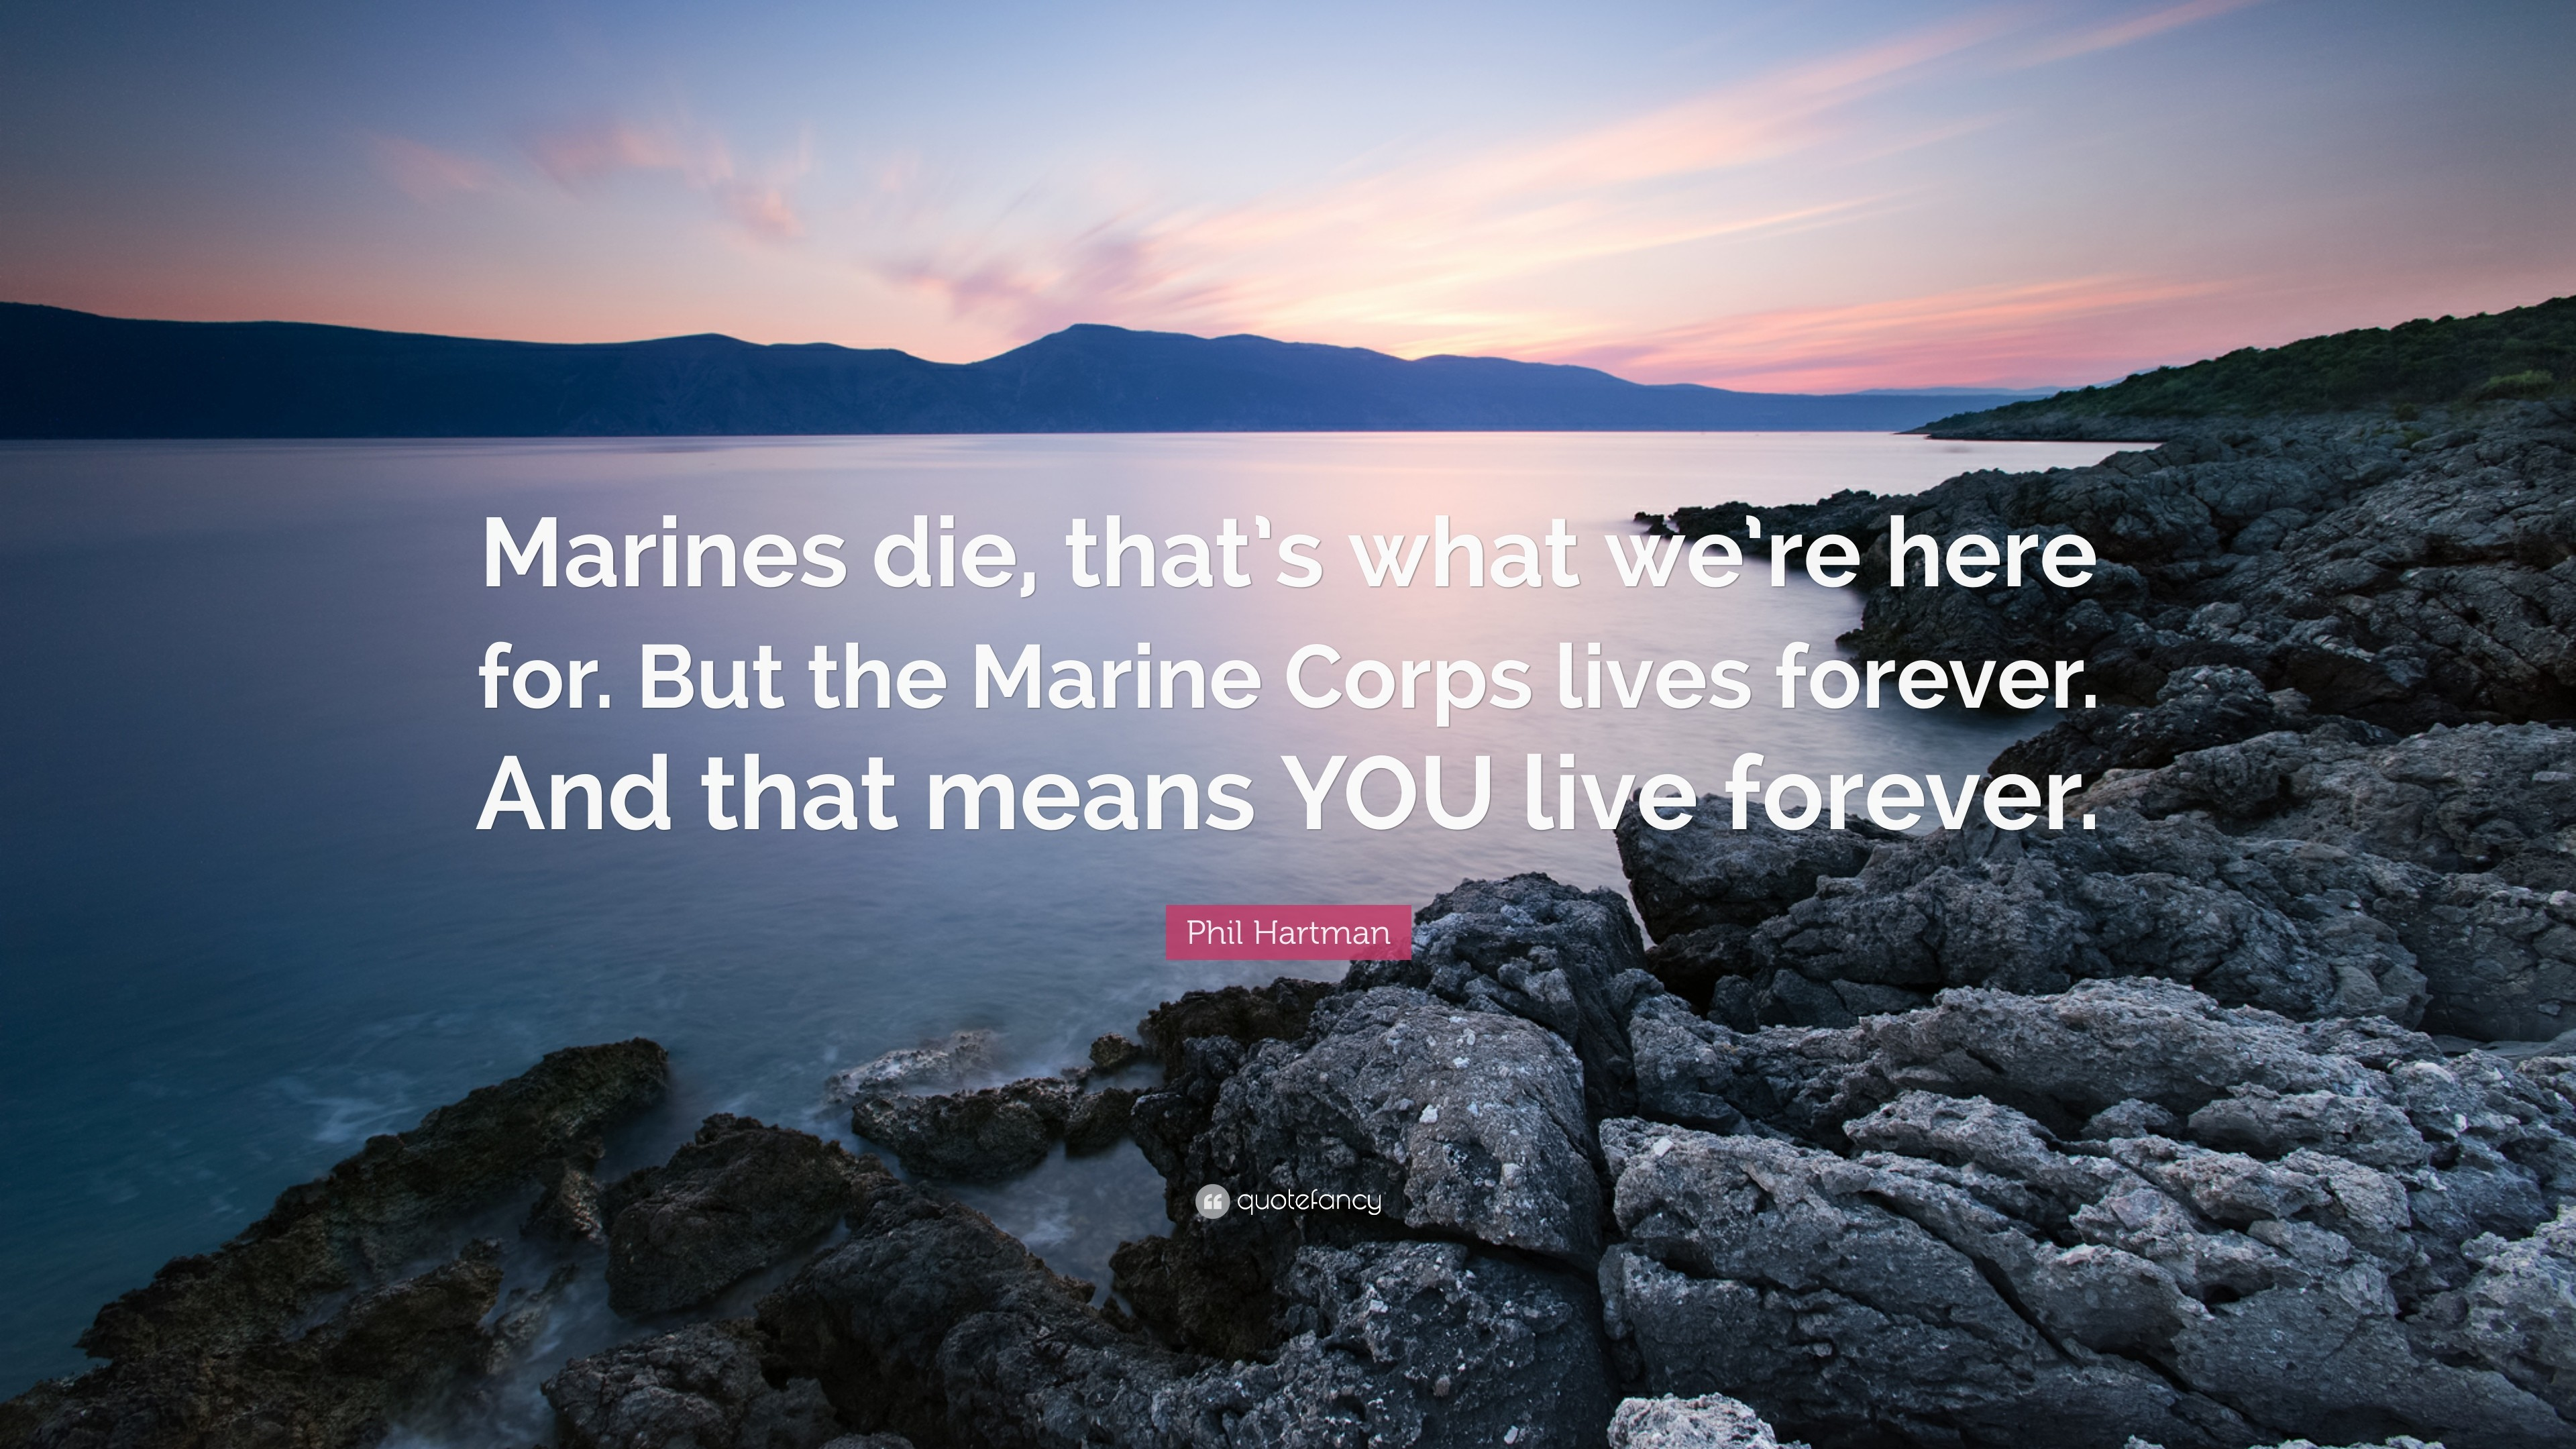 … phil hartman quote marines that s what we re here for but …